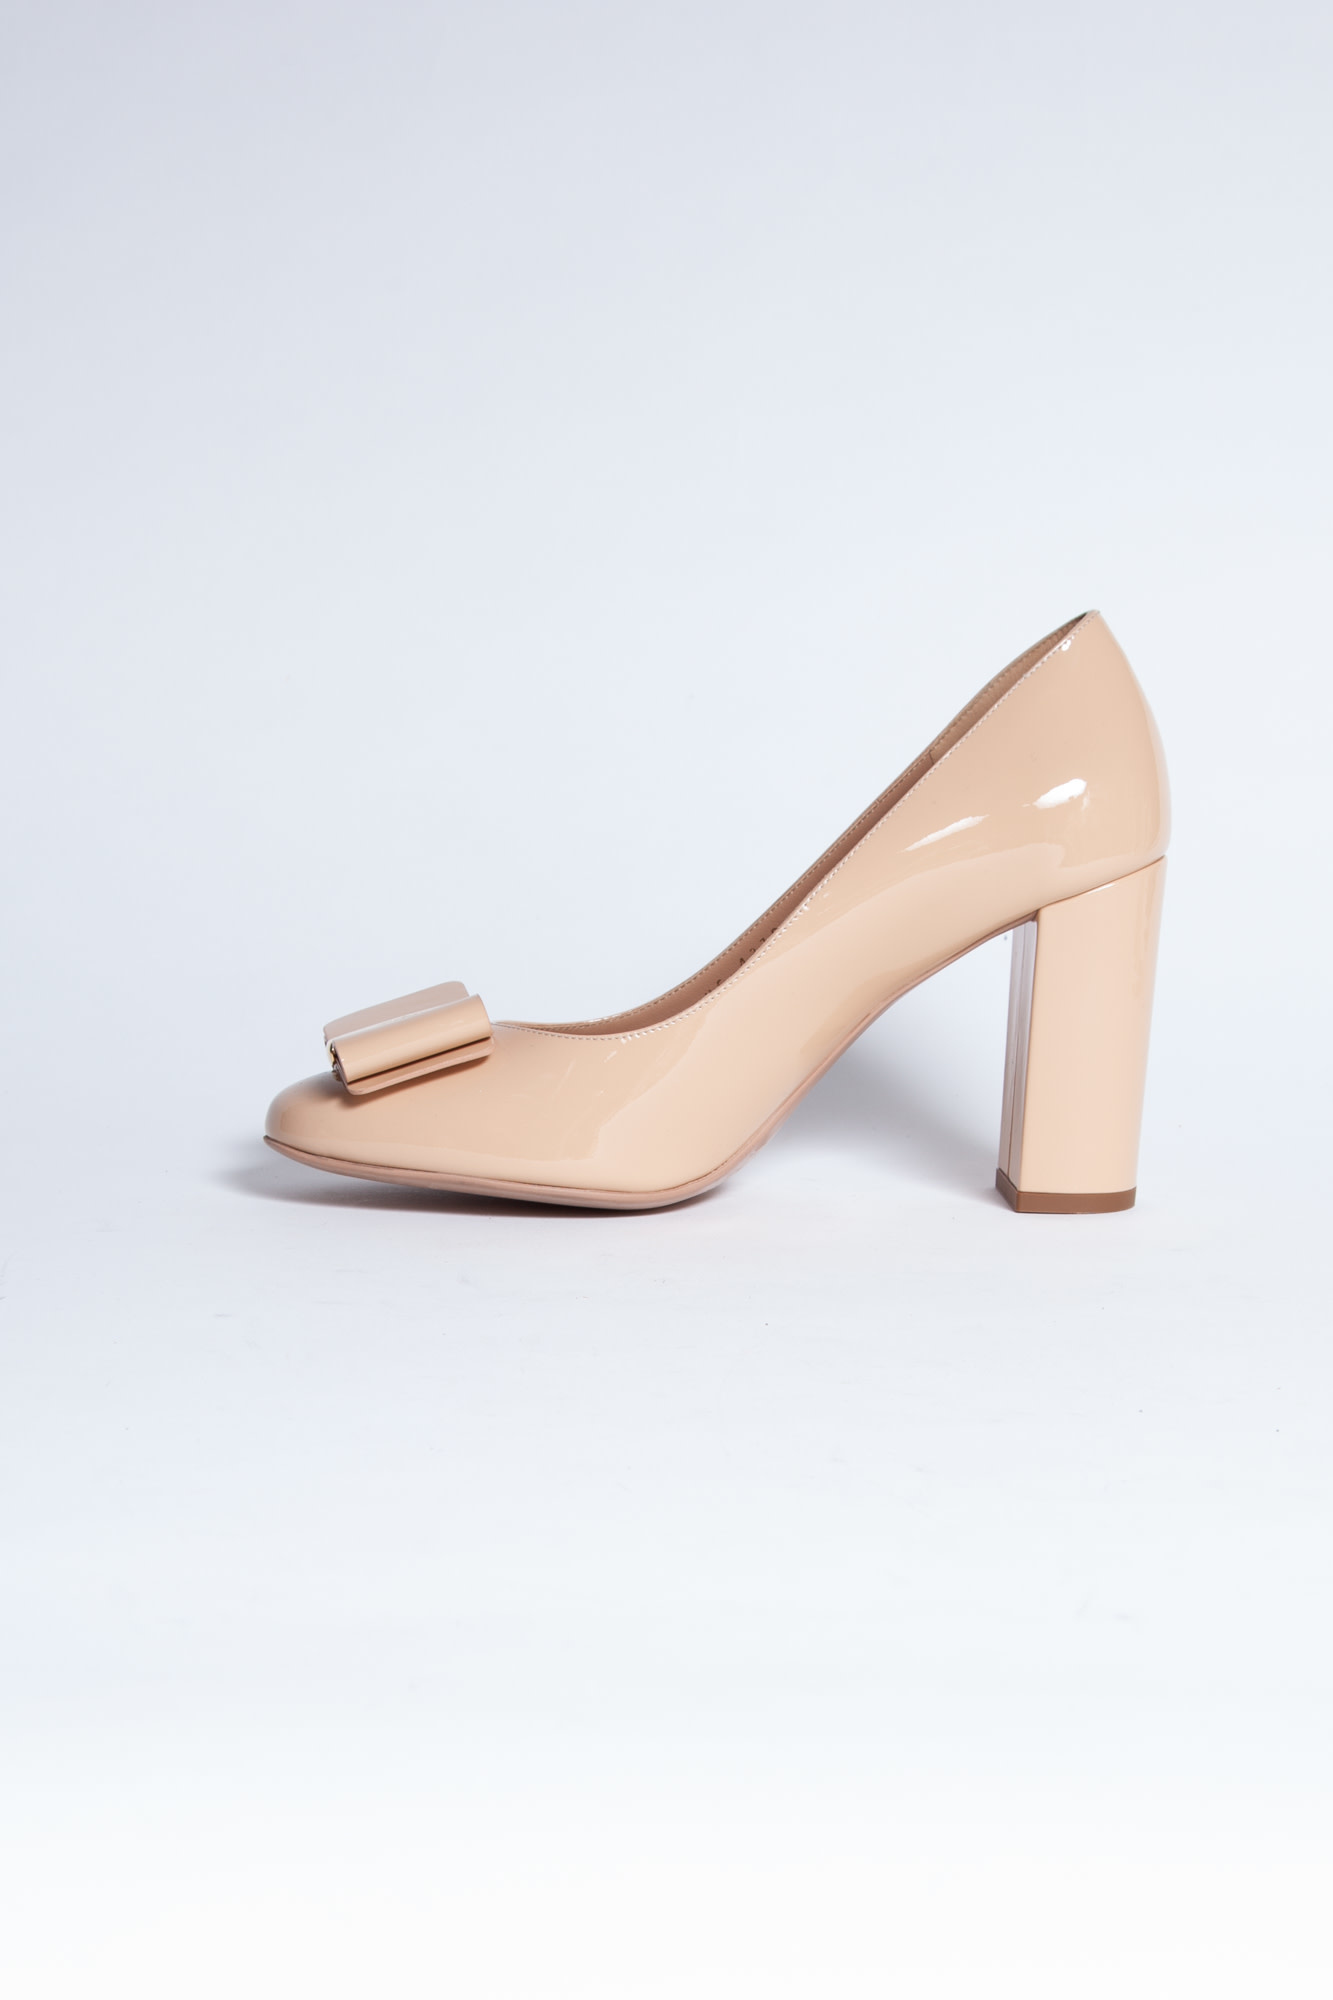 Salvatore Ferragamo BLUSH PINK LEATHER PUMPS WITH KNOT